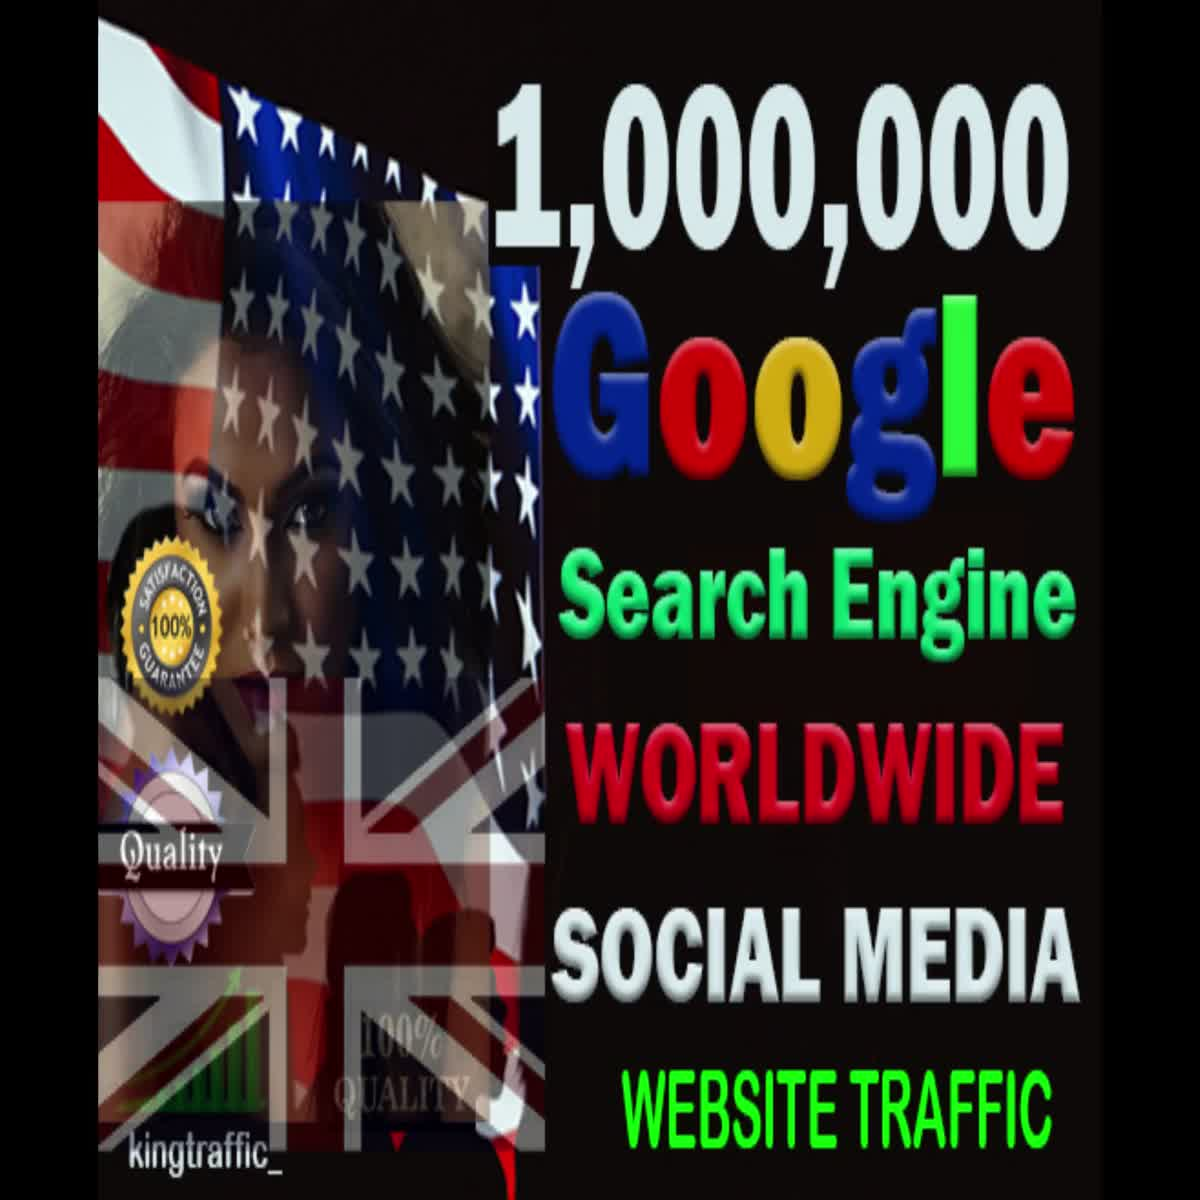 1,000,000 Worldwide Organic Web Traffic from Search Engine and Social Media